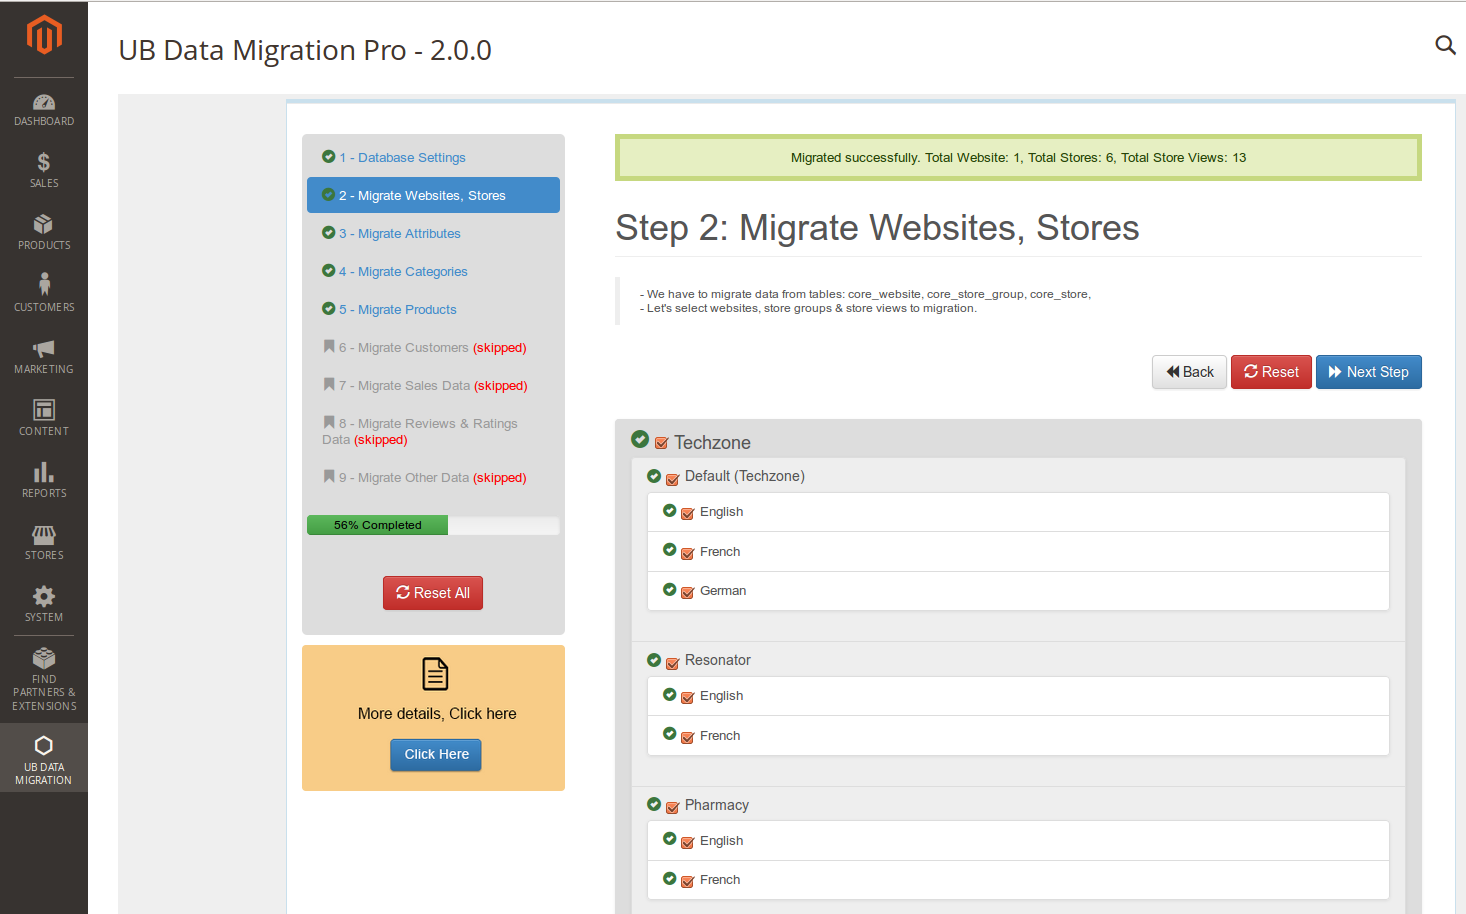 Step 2- Migrate Websites Stores